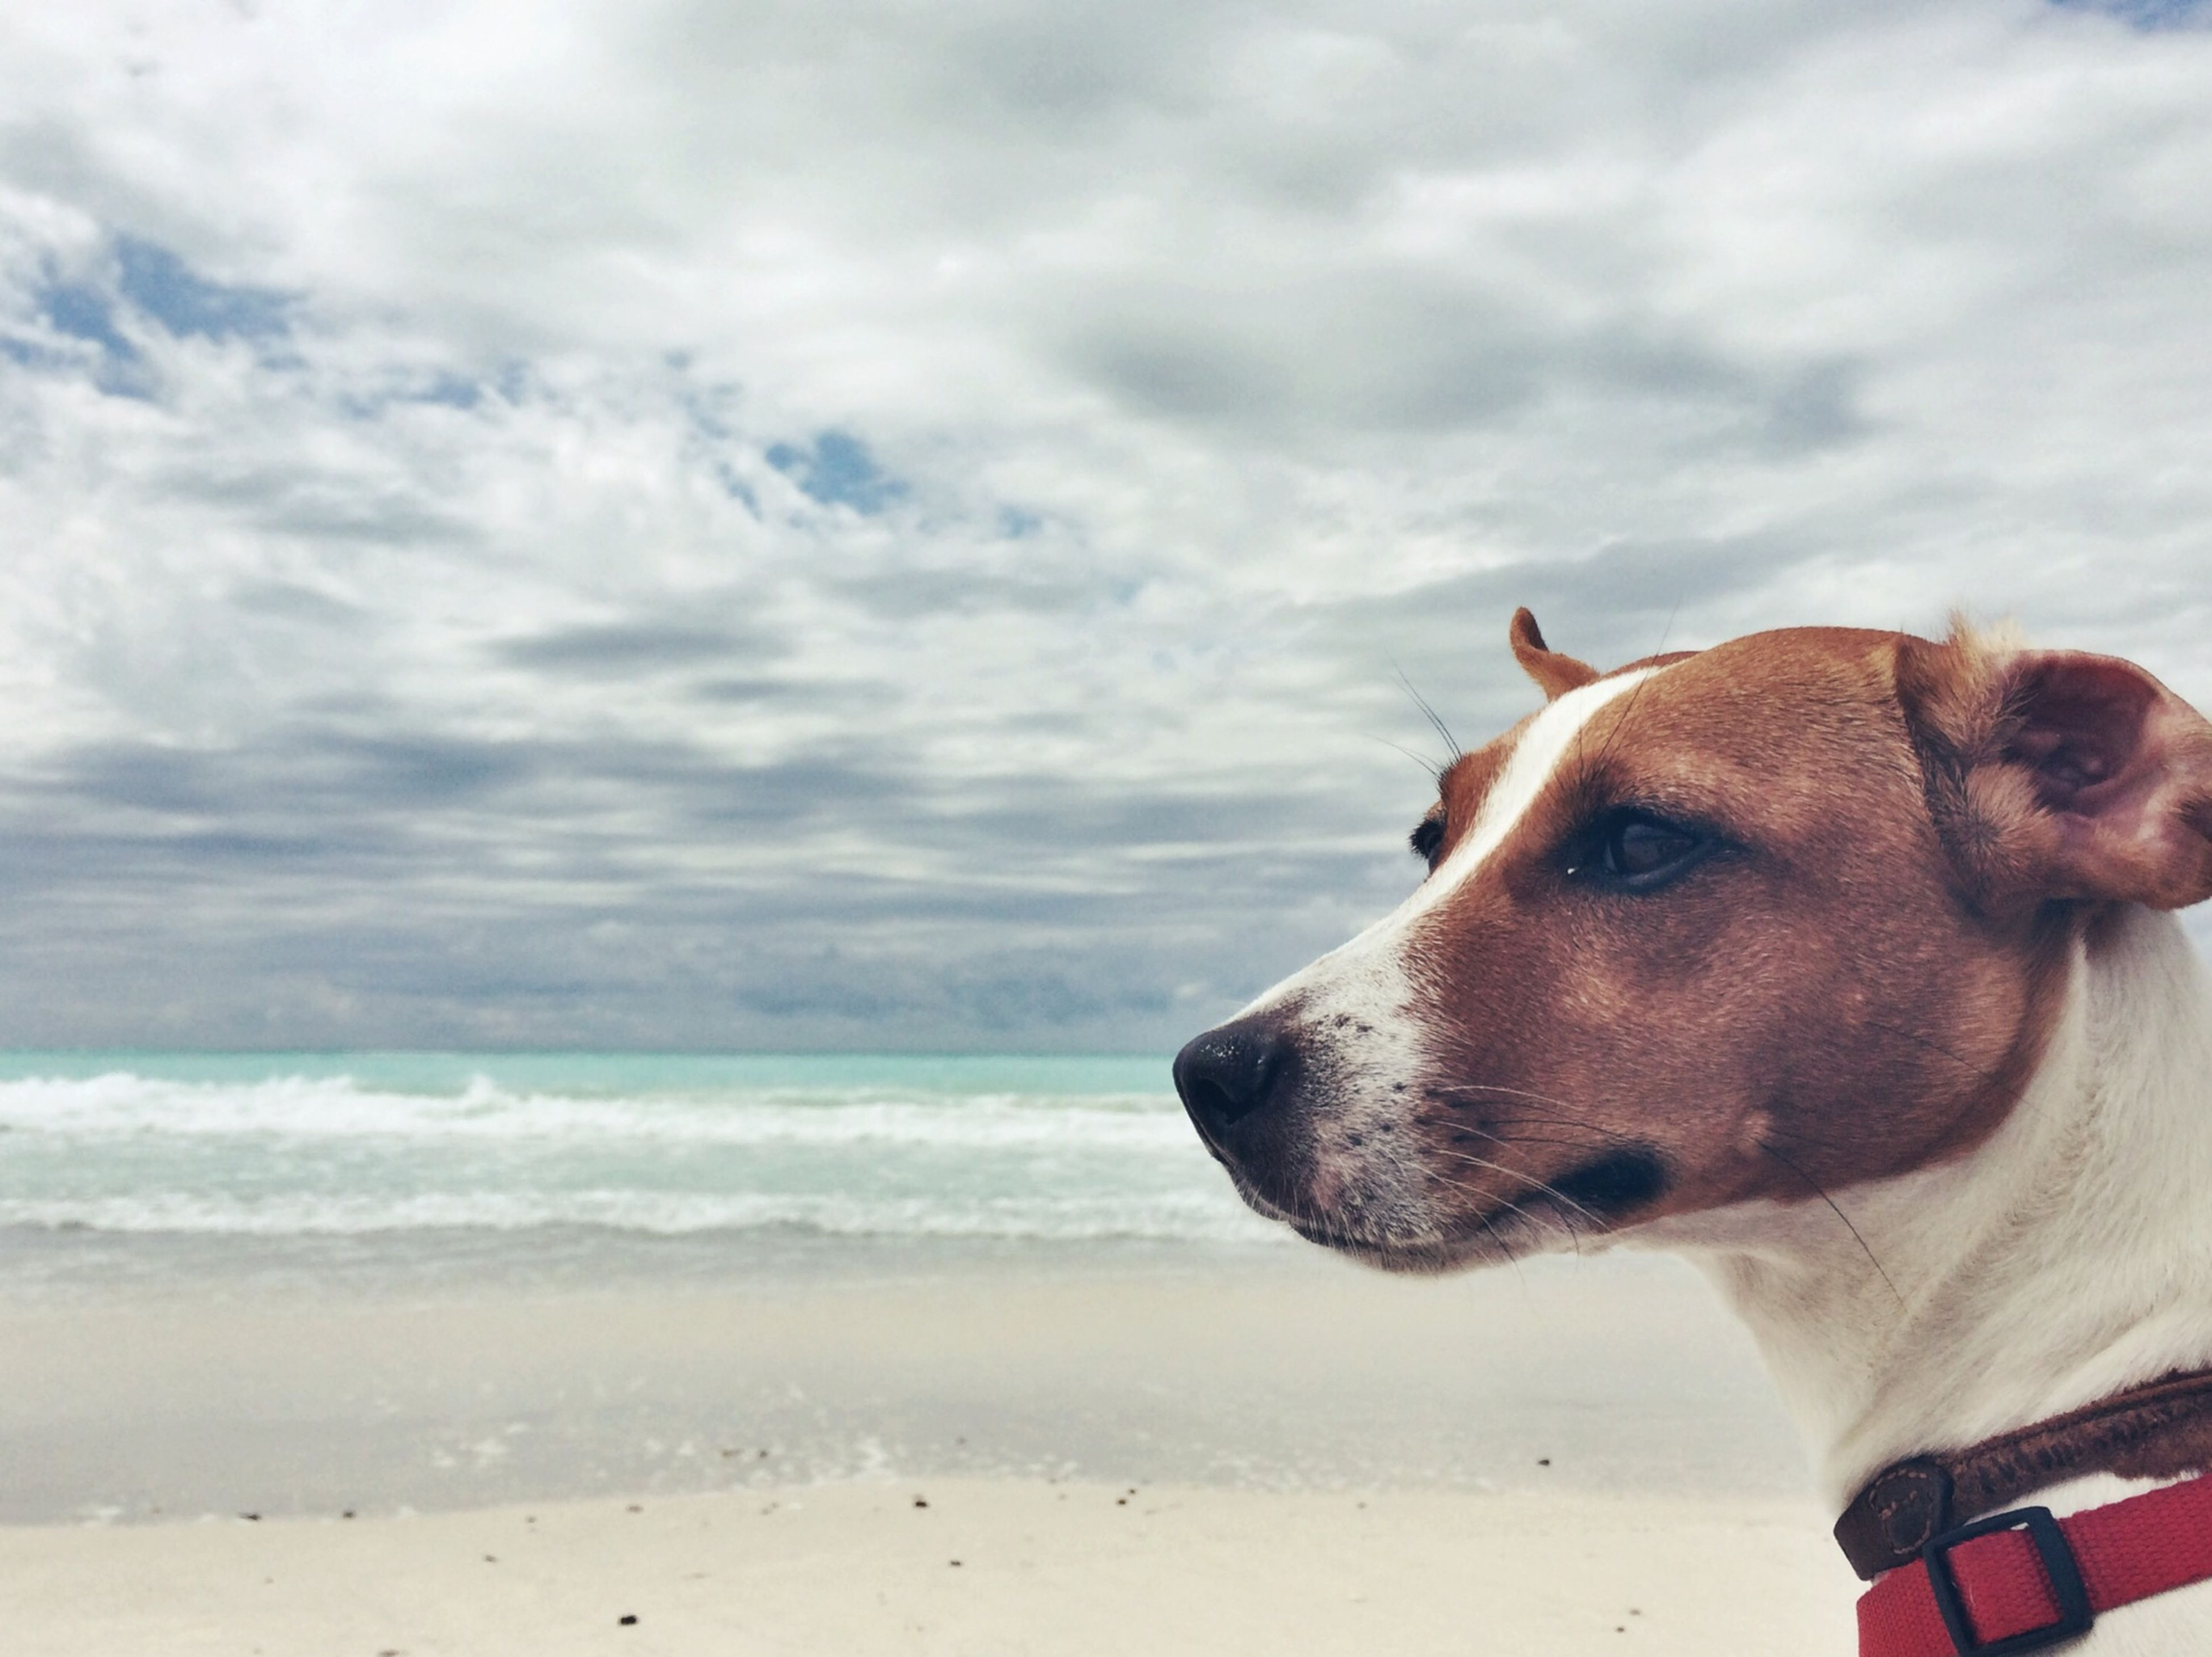 beach, sky, sea, domestic animals, cloud - sky, animal themes, sand, dog, shore, one animal, mammal, water, horizon over water, pets, cloudy, cloud, nature, scenics, tranquil scene, tranquility